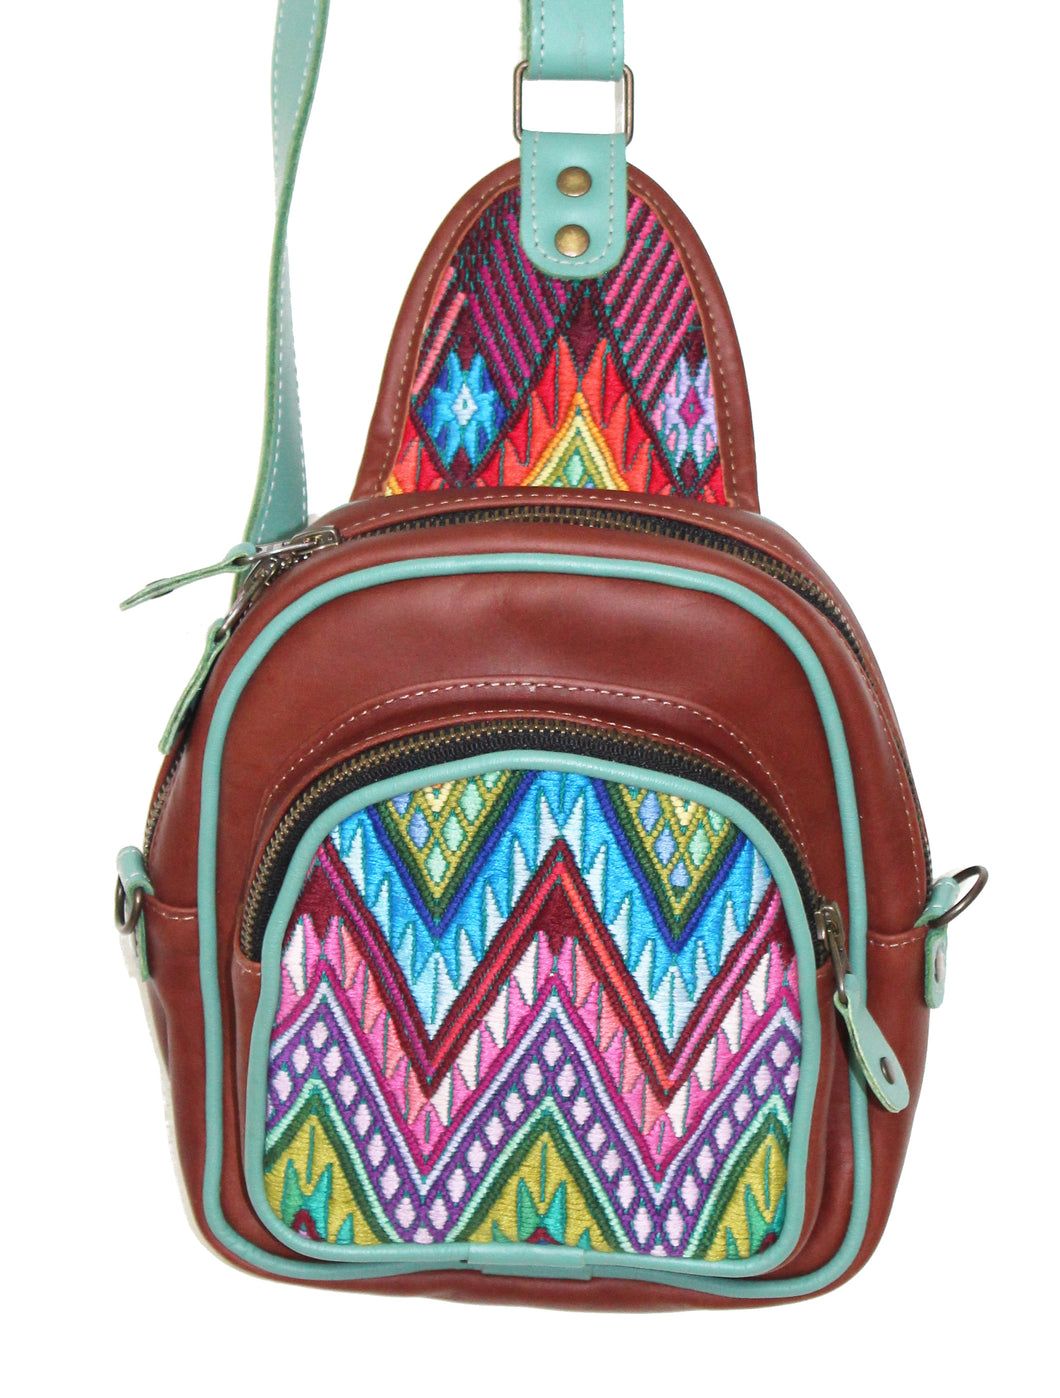 MoonLake Designs Blake Sling Over Backpack Bag in red brown (burnt sienna) handcrafted leather with fun geometric huipil design in blue, pink, purple, and green with teal leather adjustable strap and accents